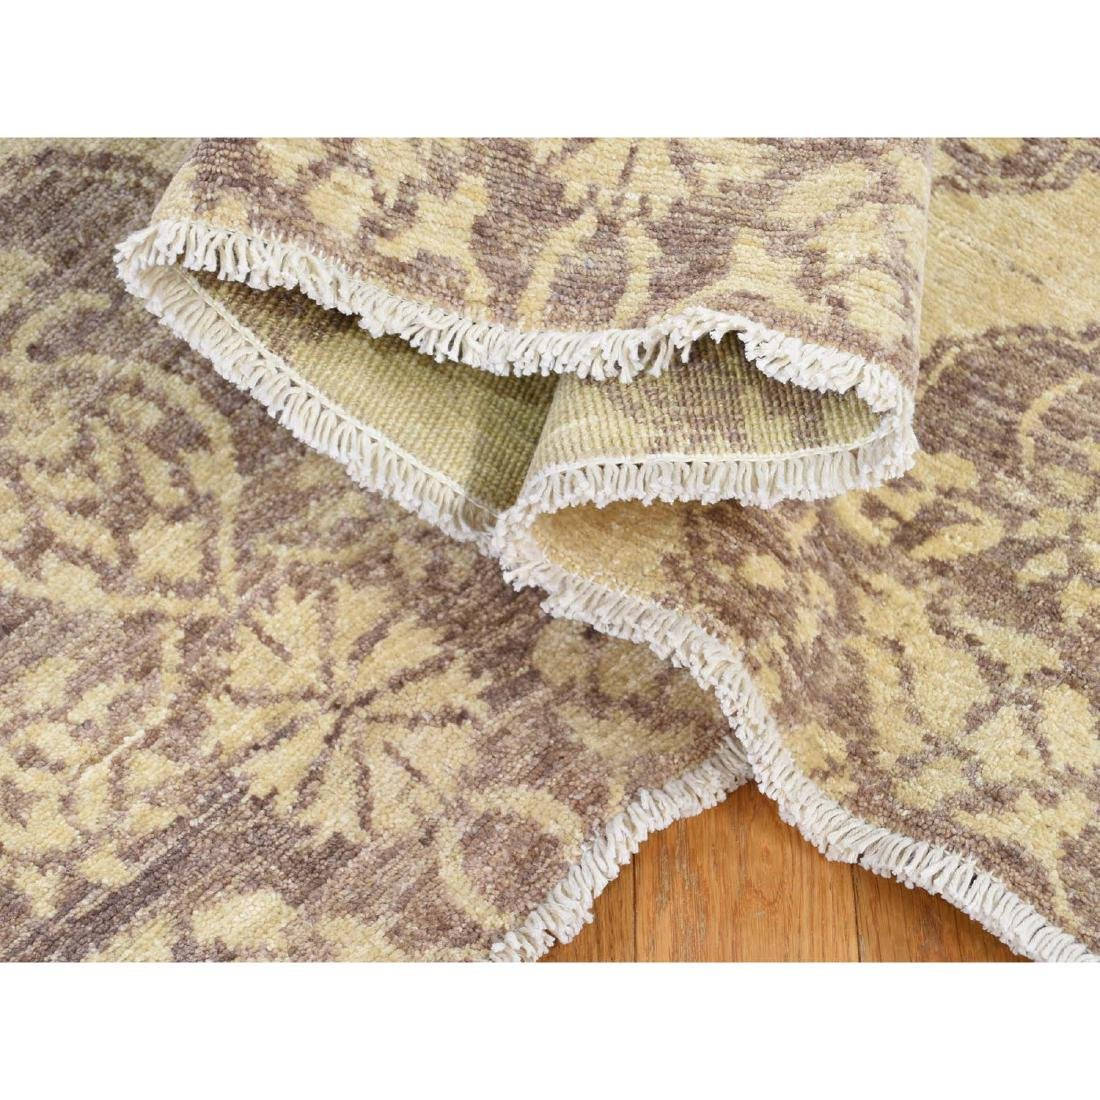 Pure Wool Peshawar with Mughal Design Hand Knotted Rug - 6